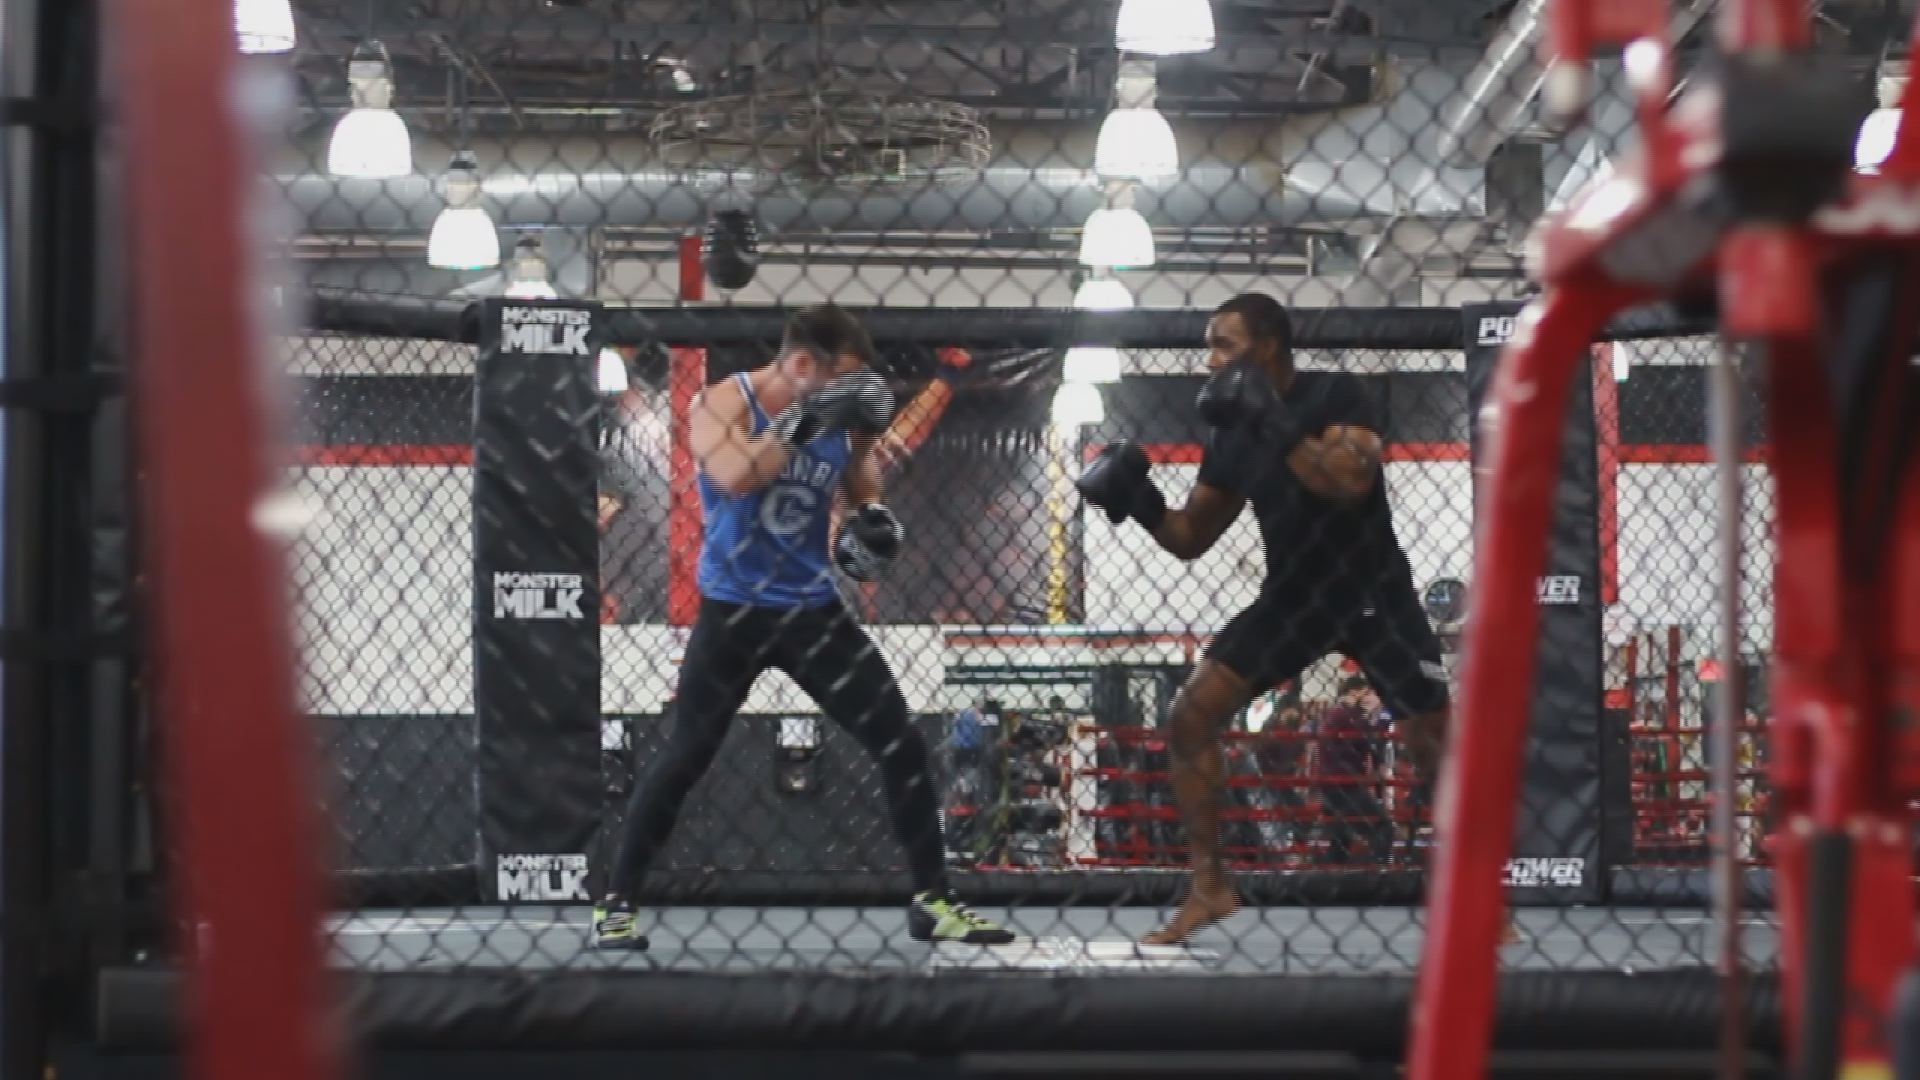 mesa mma fighter set for fight at celebrity theatre next week